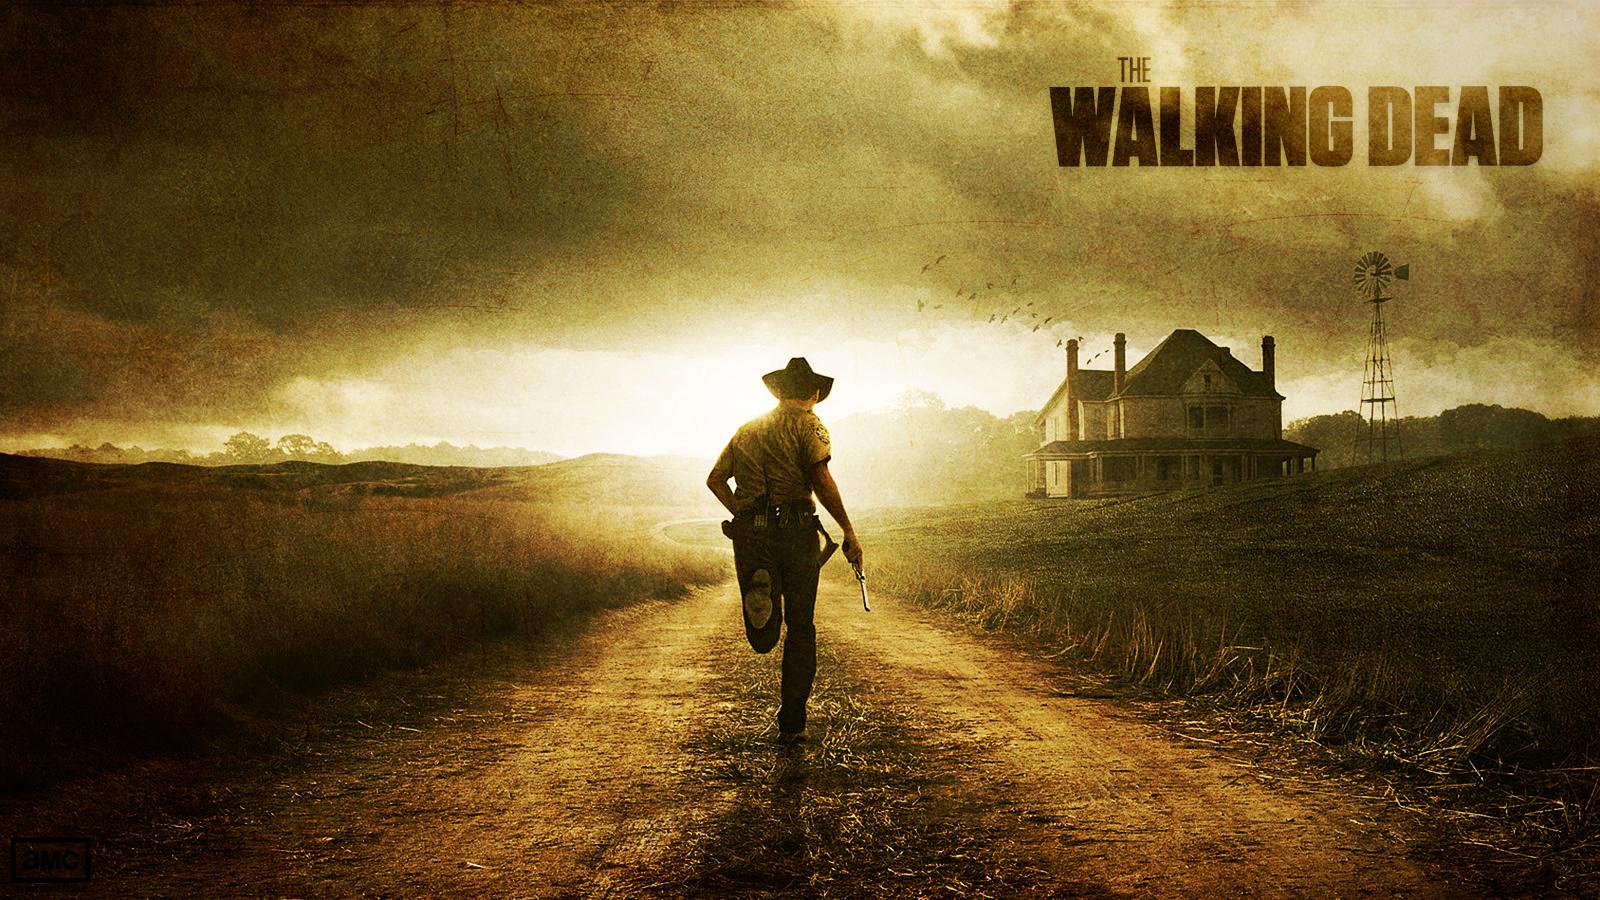 DeviantArt: More Like The Walking Dead Wallpaper by skywalkerdesign